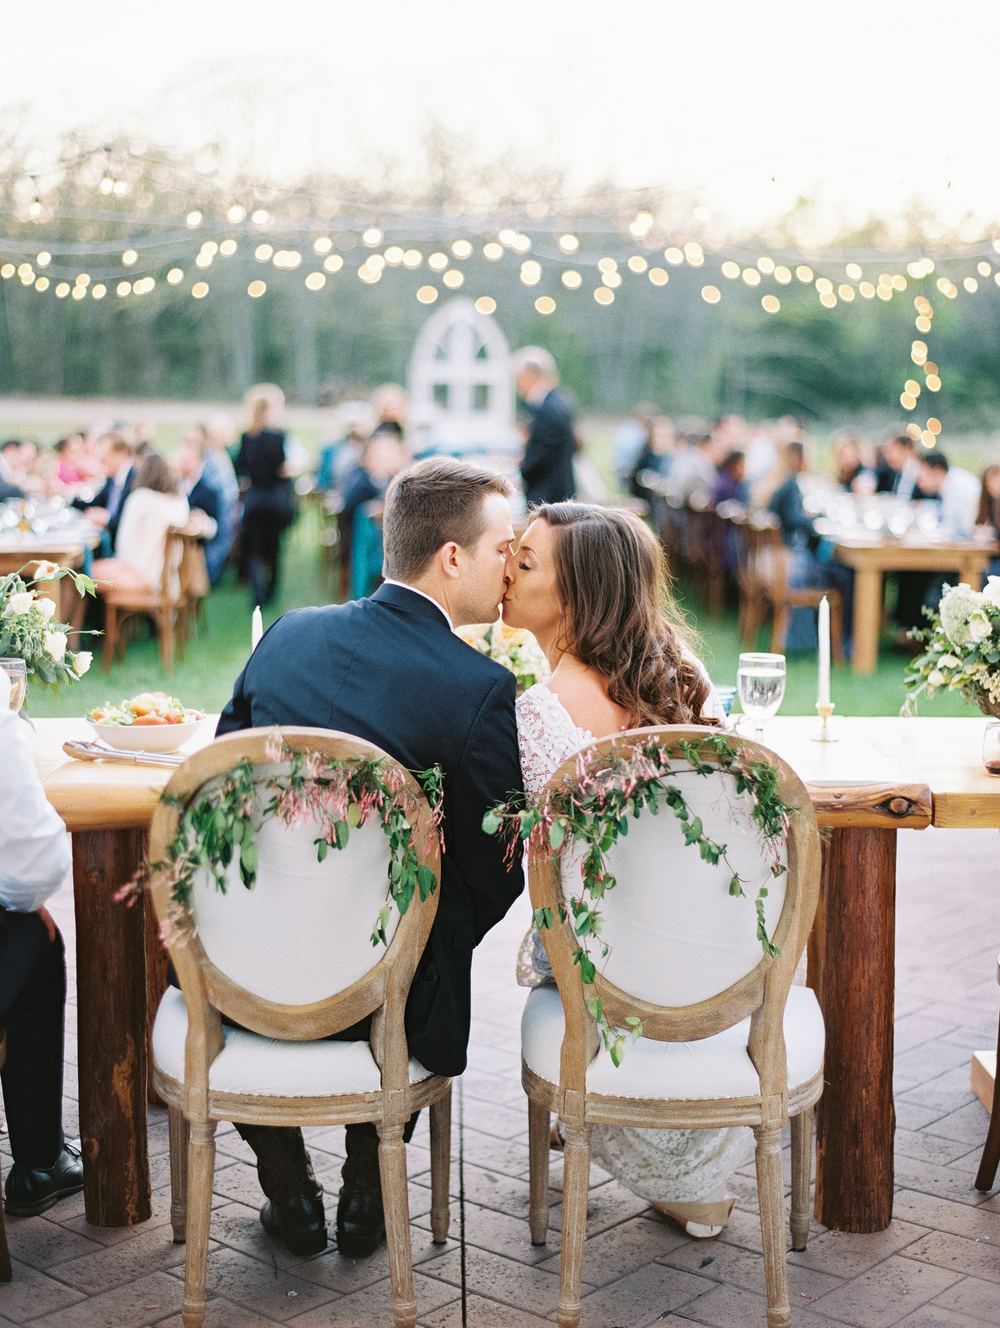 Callie & Chris: Outdoor Spring Wedding